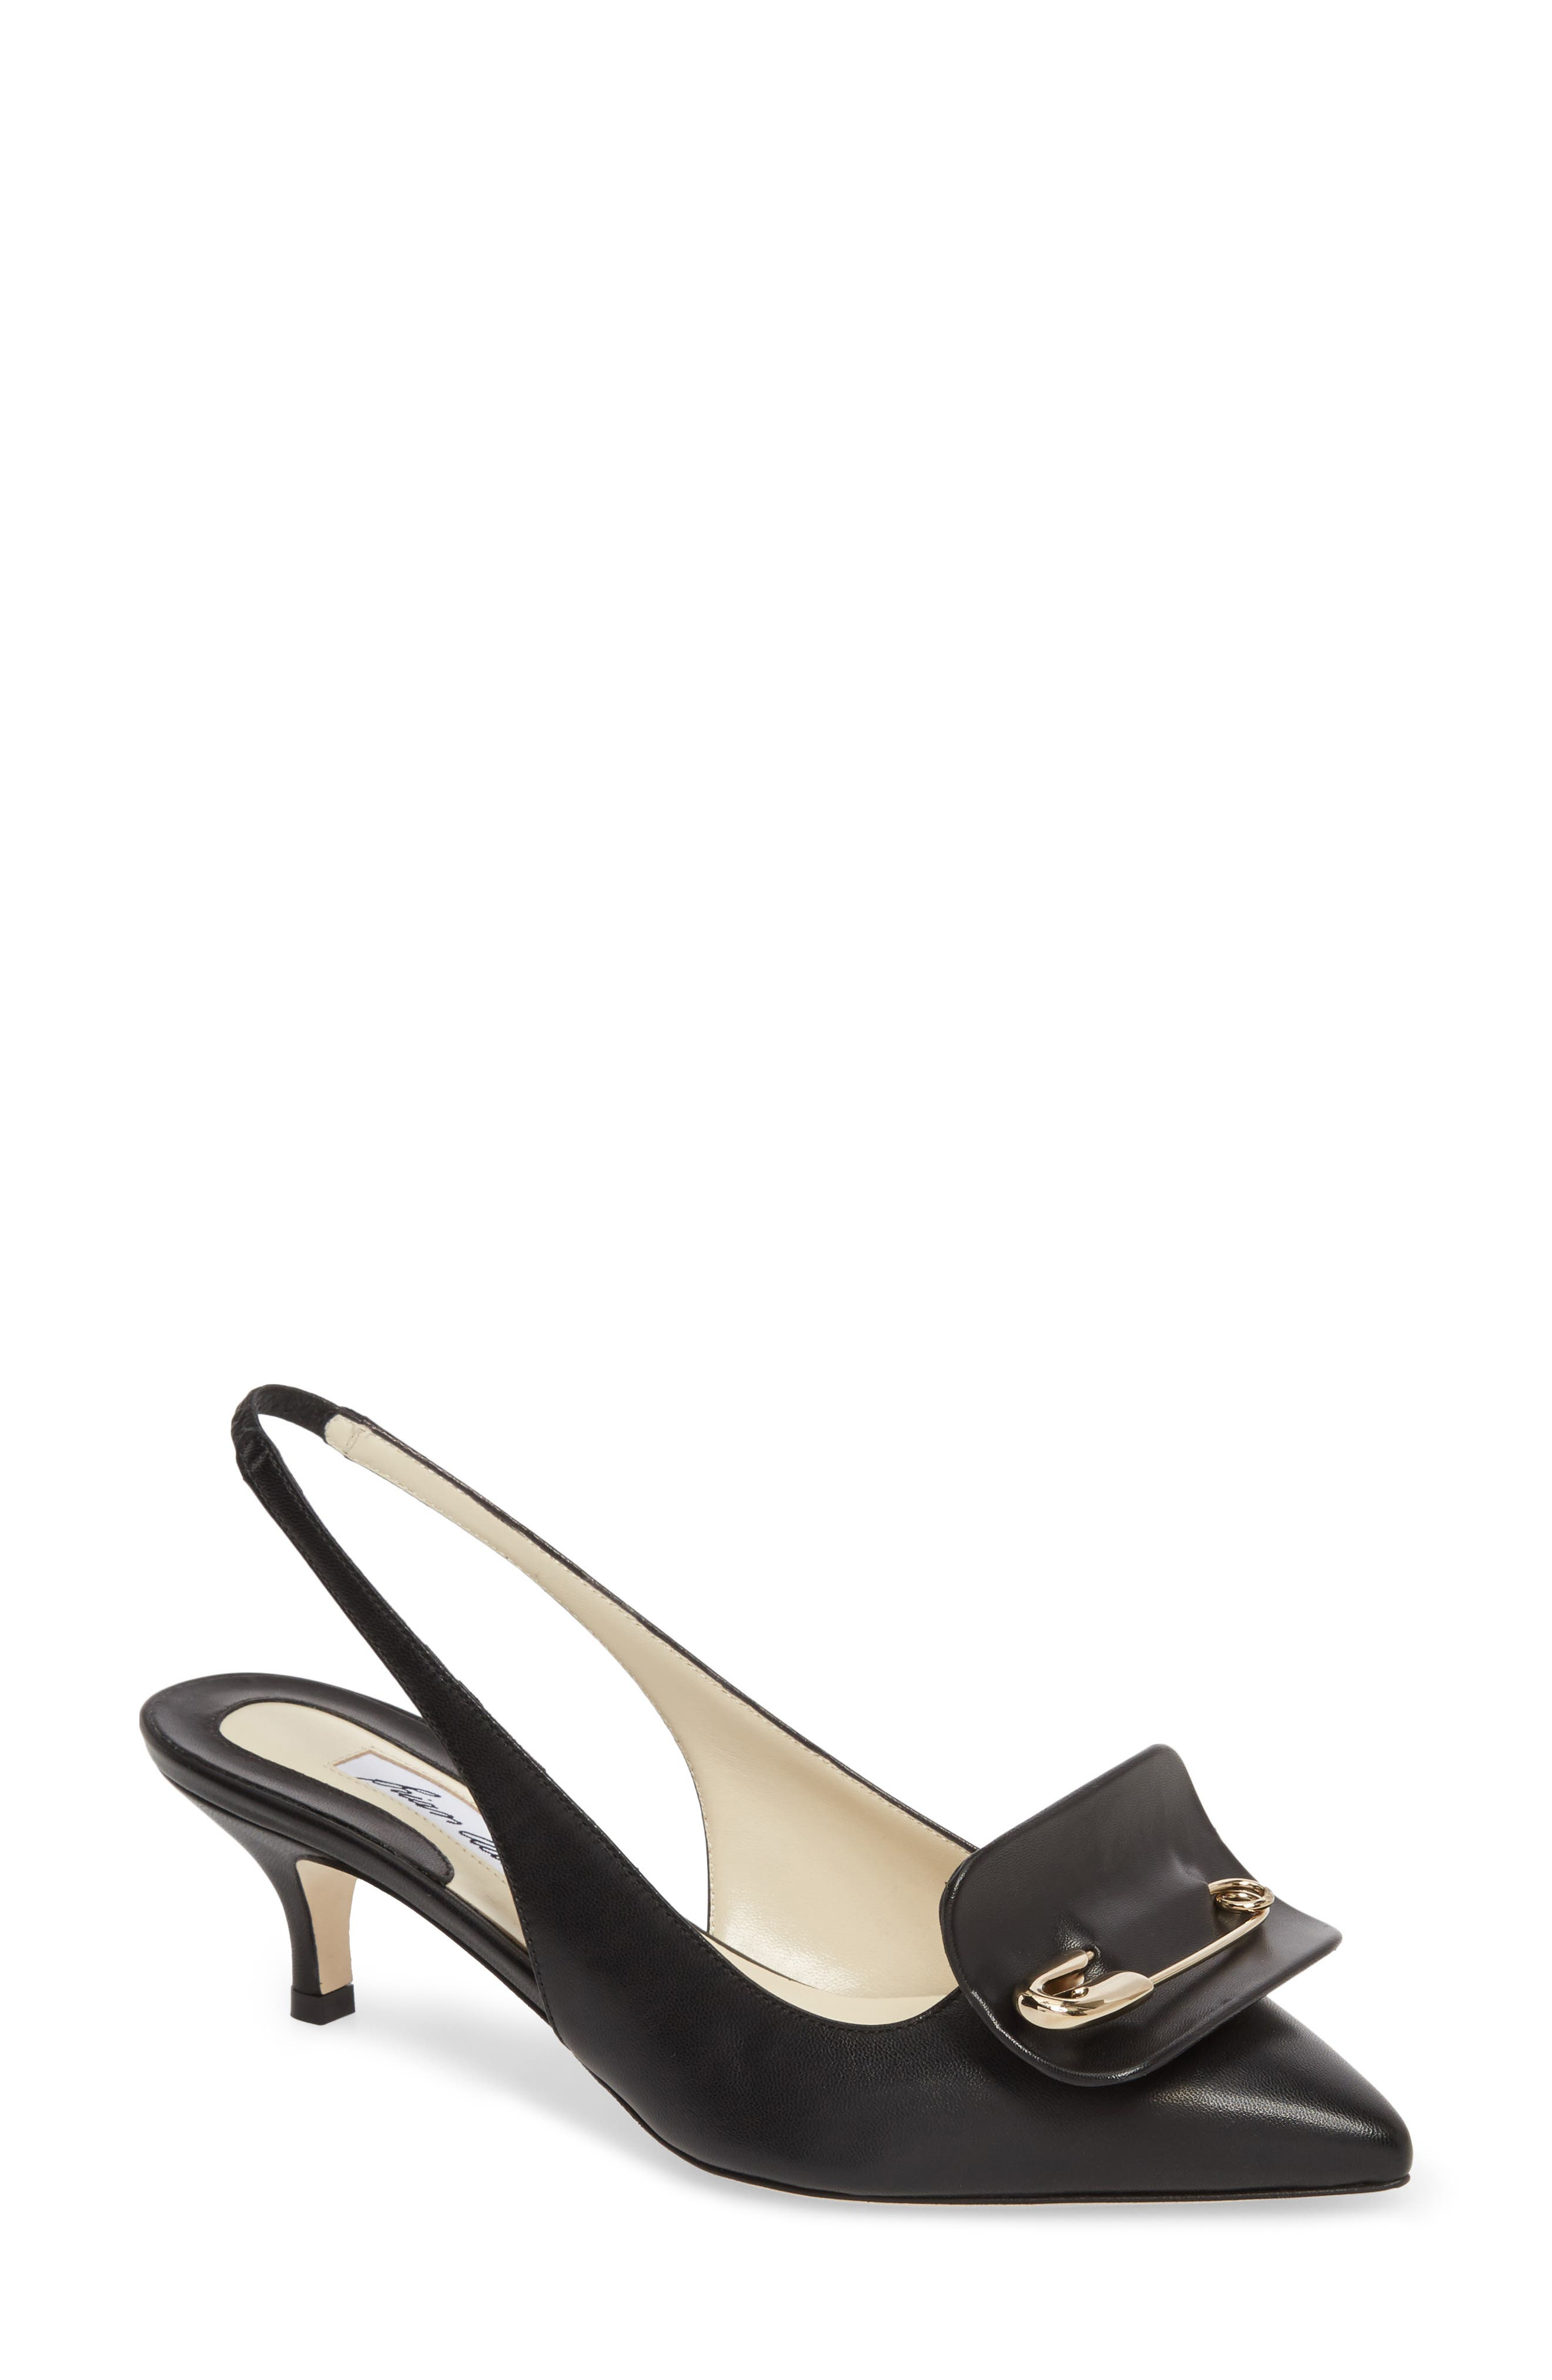 Guiliaa Slingback Pump,                             Main thumbnail 1, color,                             BLACK NAPPA